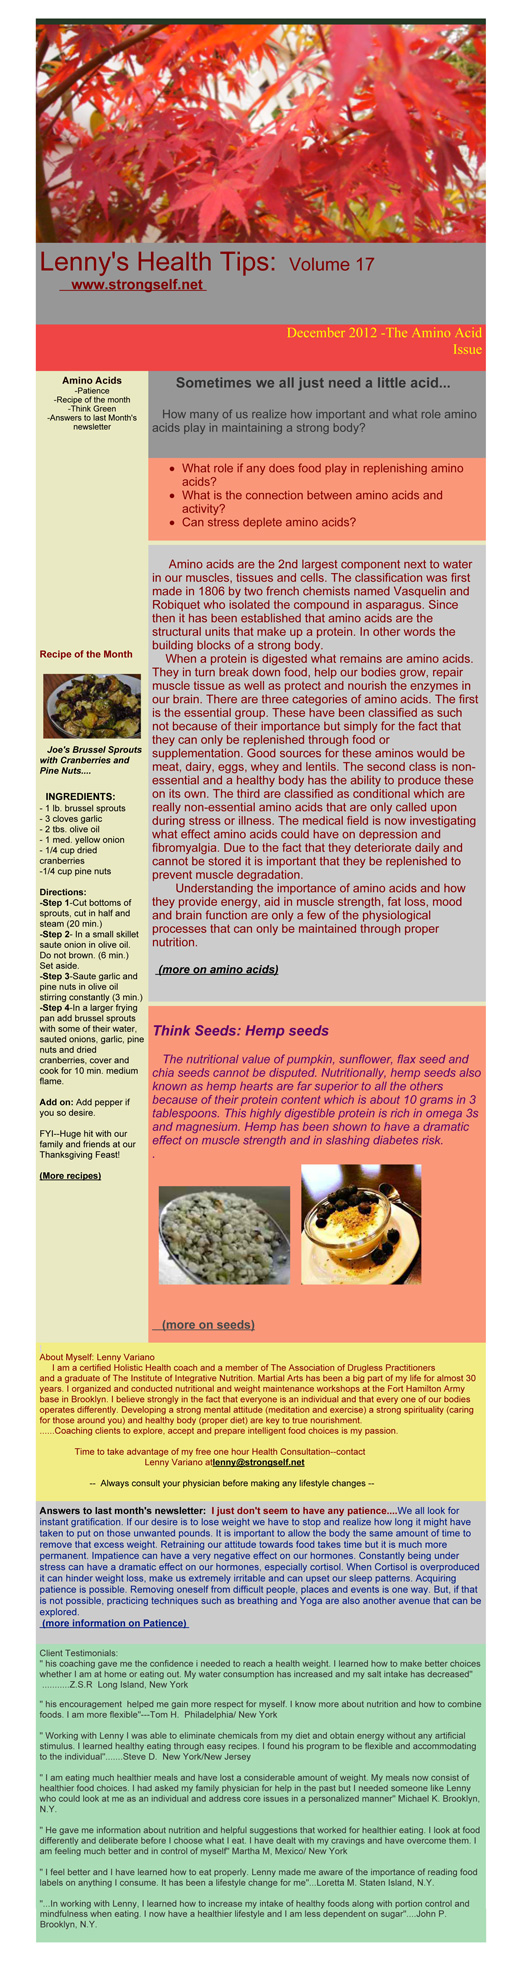 December 2012 Healthy Tips Newsletter